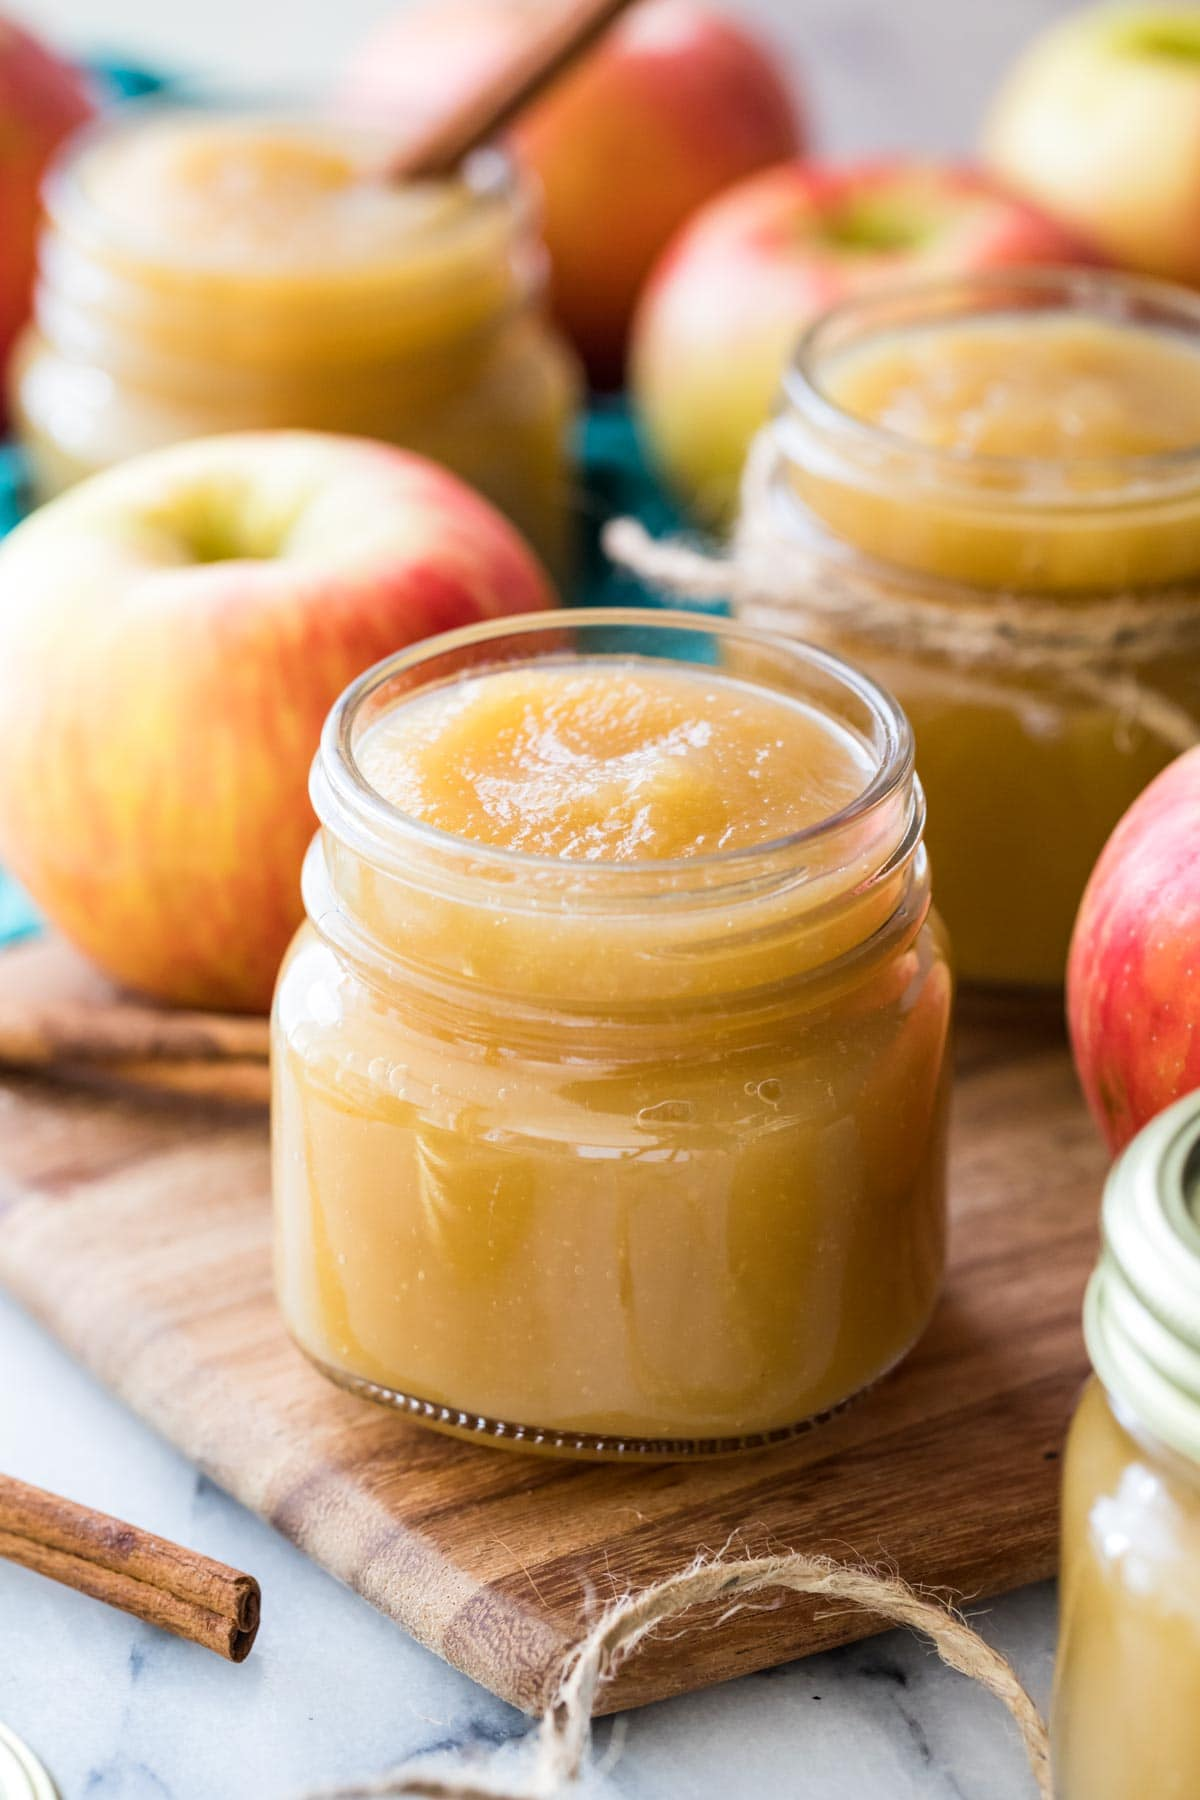 Clear glass jars filled with golden colored applesauce with red apples intermingled